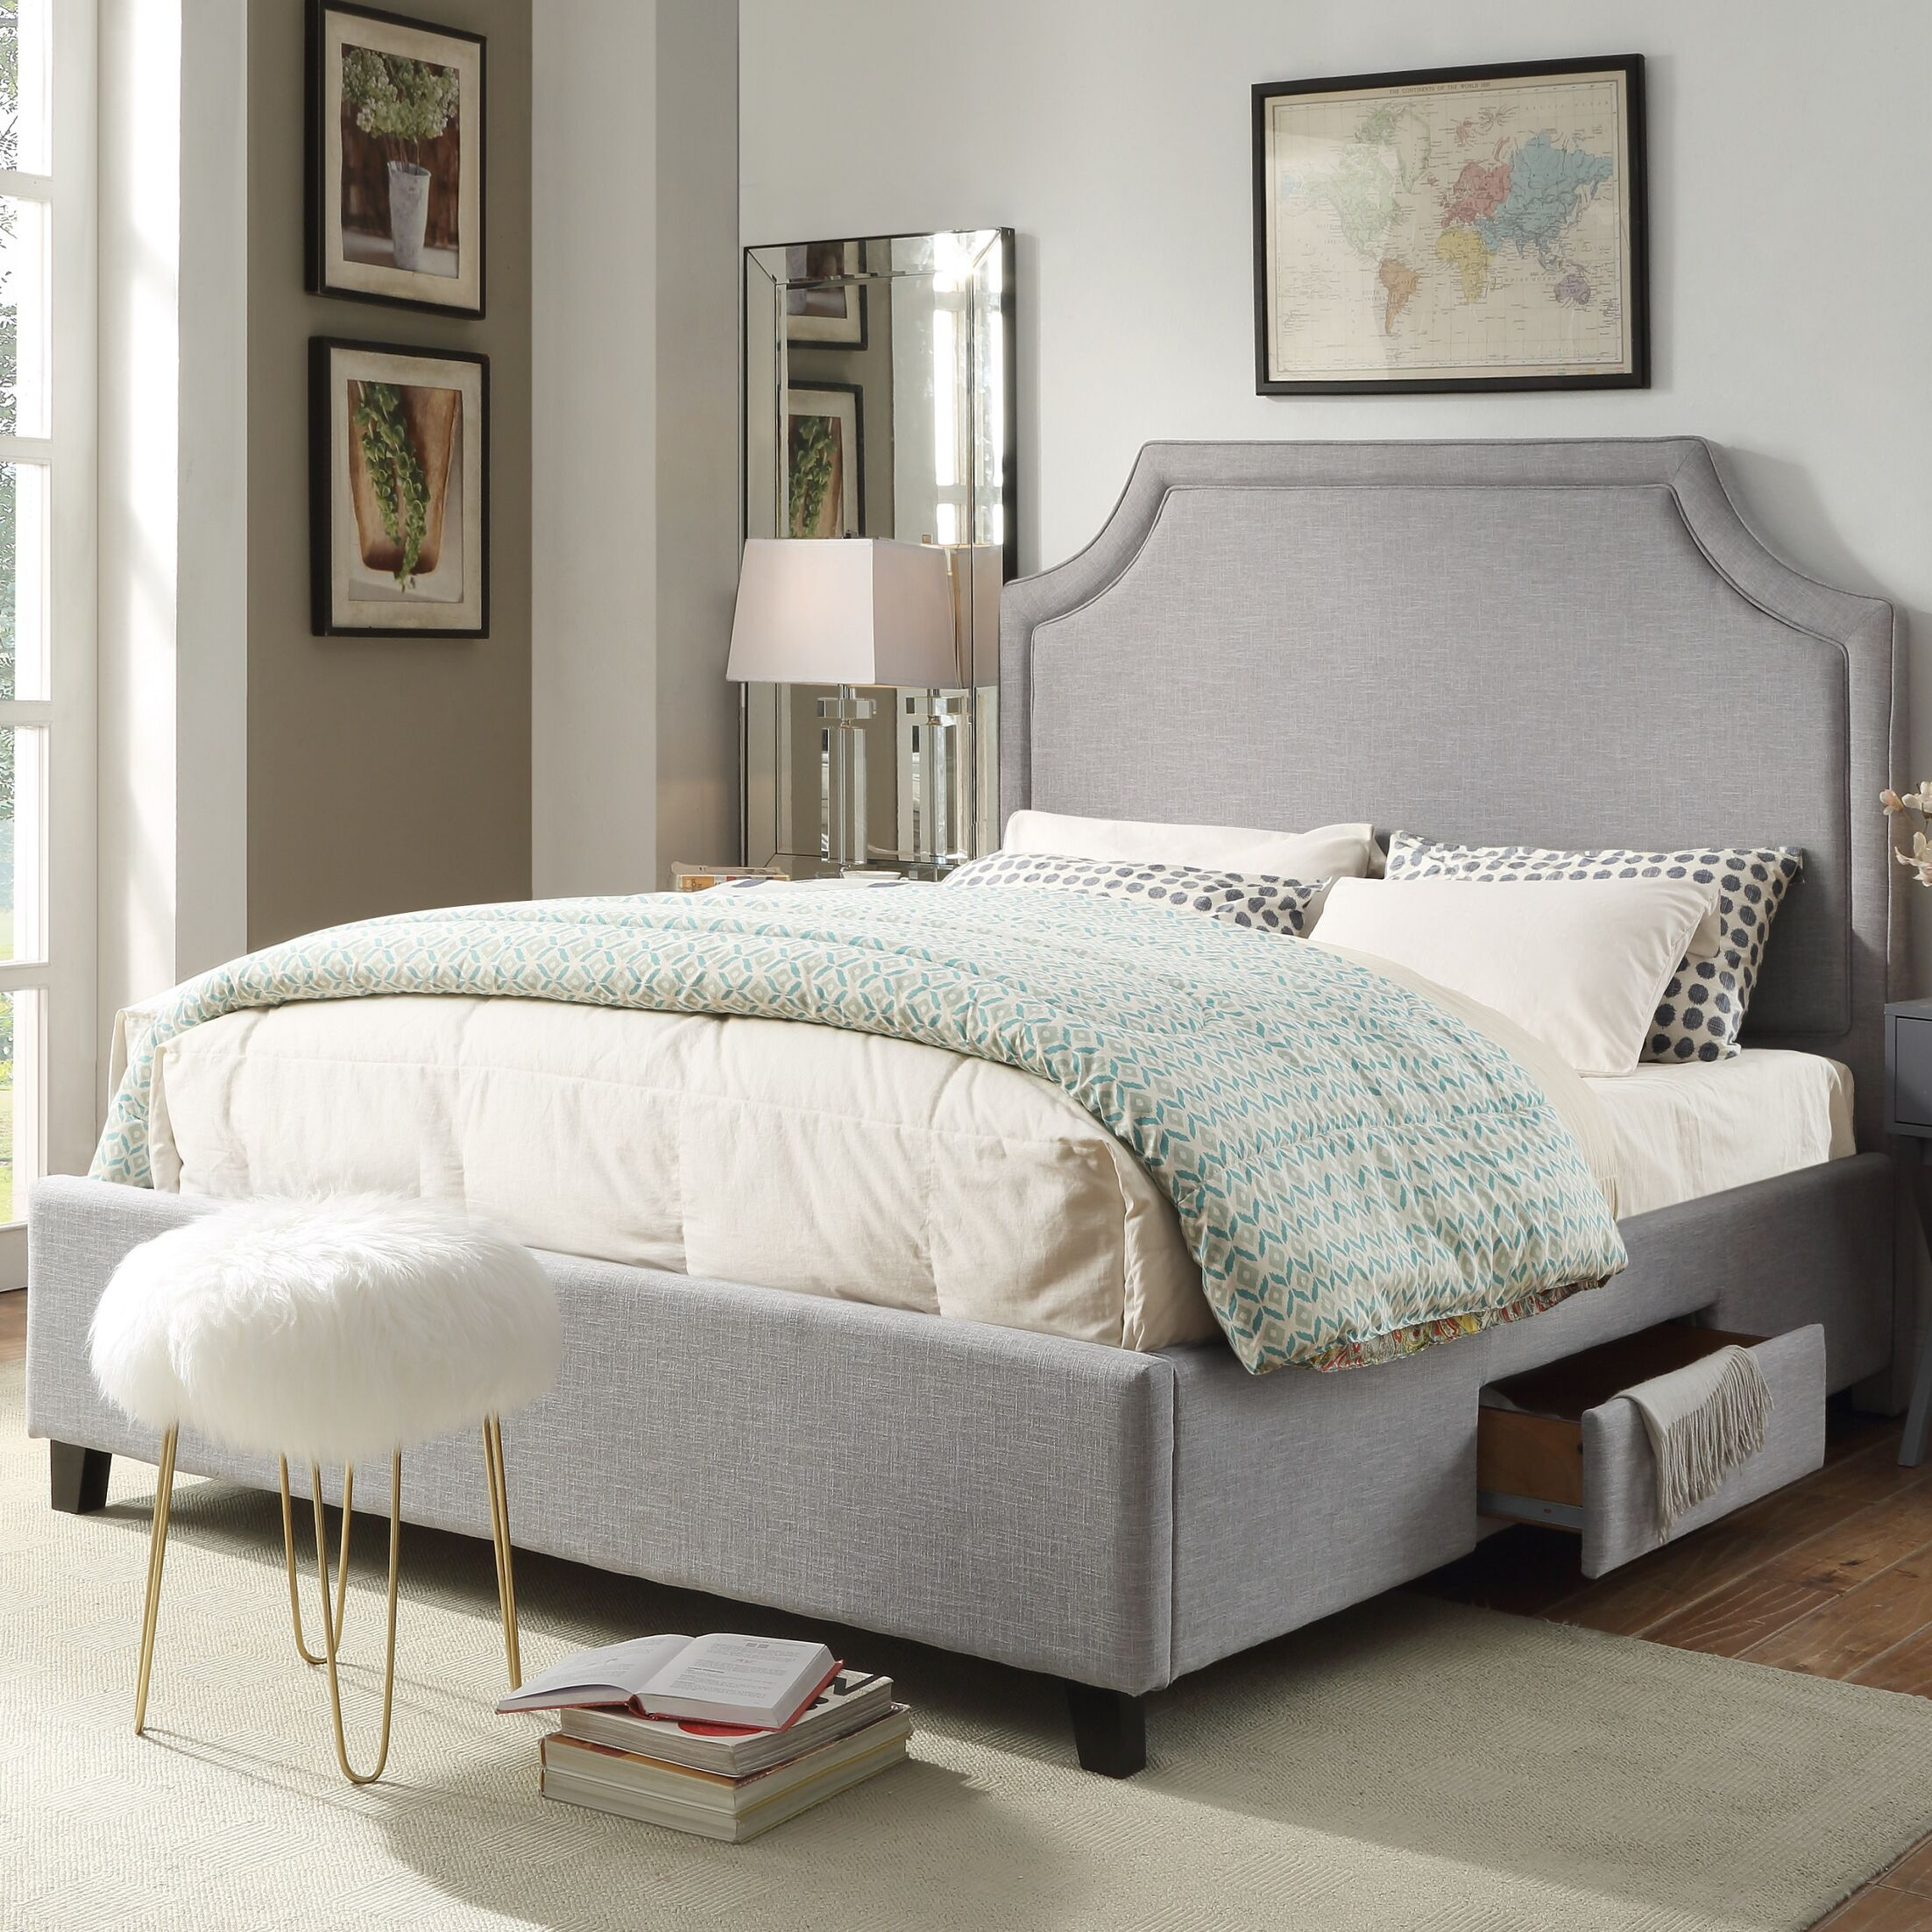 Louis Storage Platform Bed Size: King, Color: Light Gray